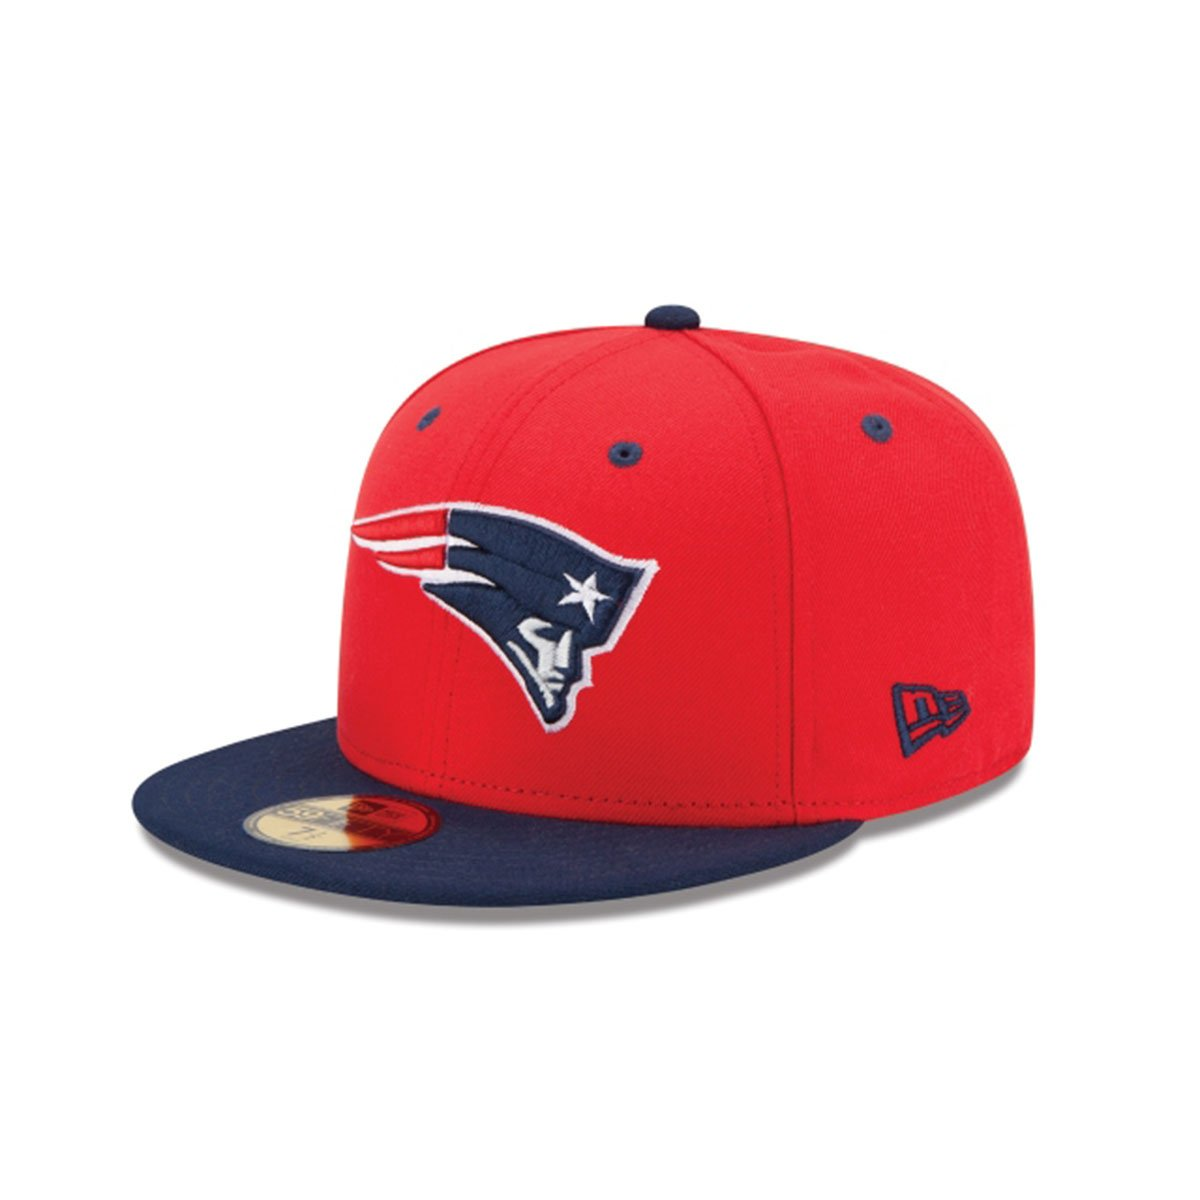 NEW ENGLAND PATRIOTS 2TONE 59FIFTY FITTED RED/NAVY